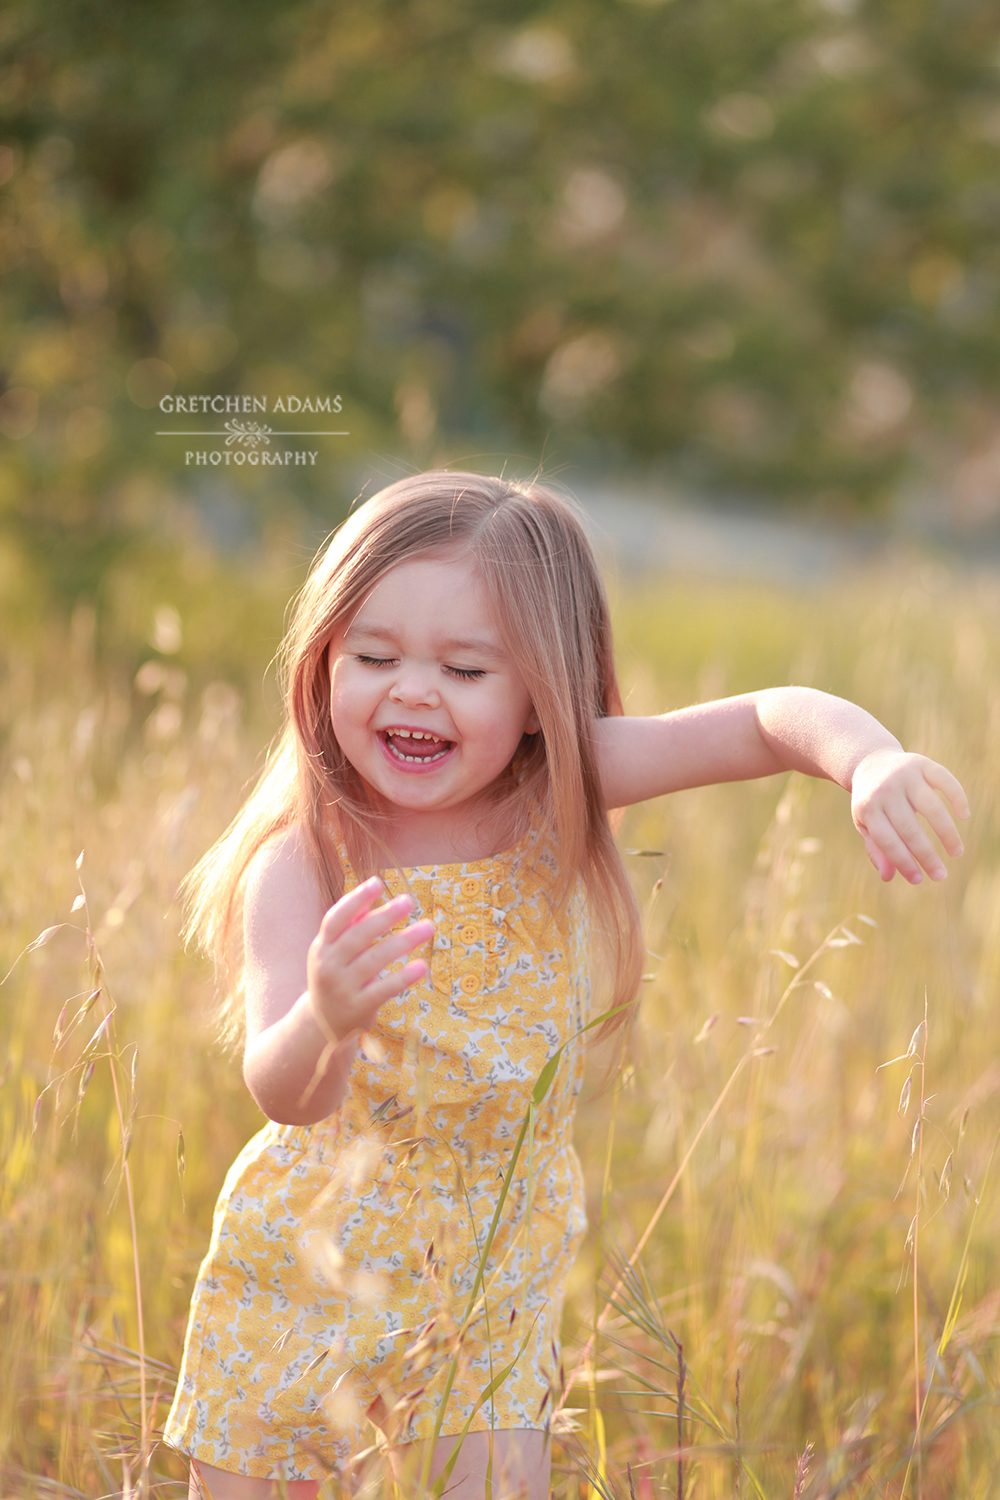 children's portraits by Gretchen Adams Photography walnut creek, ca